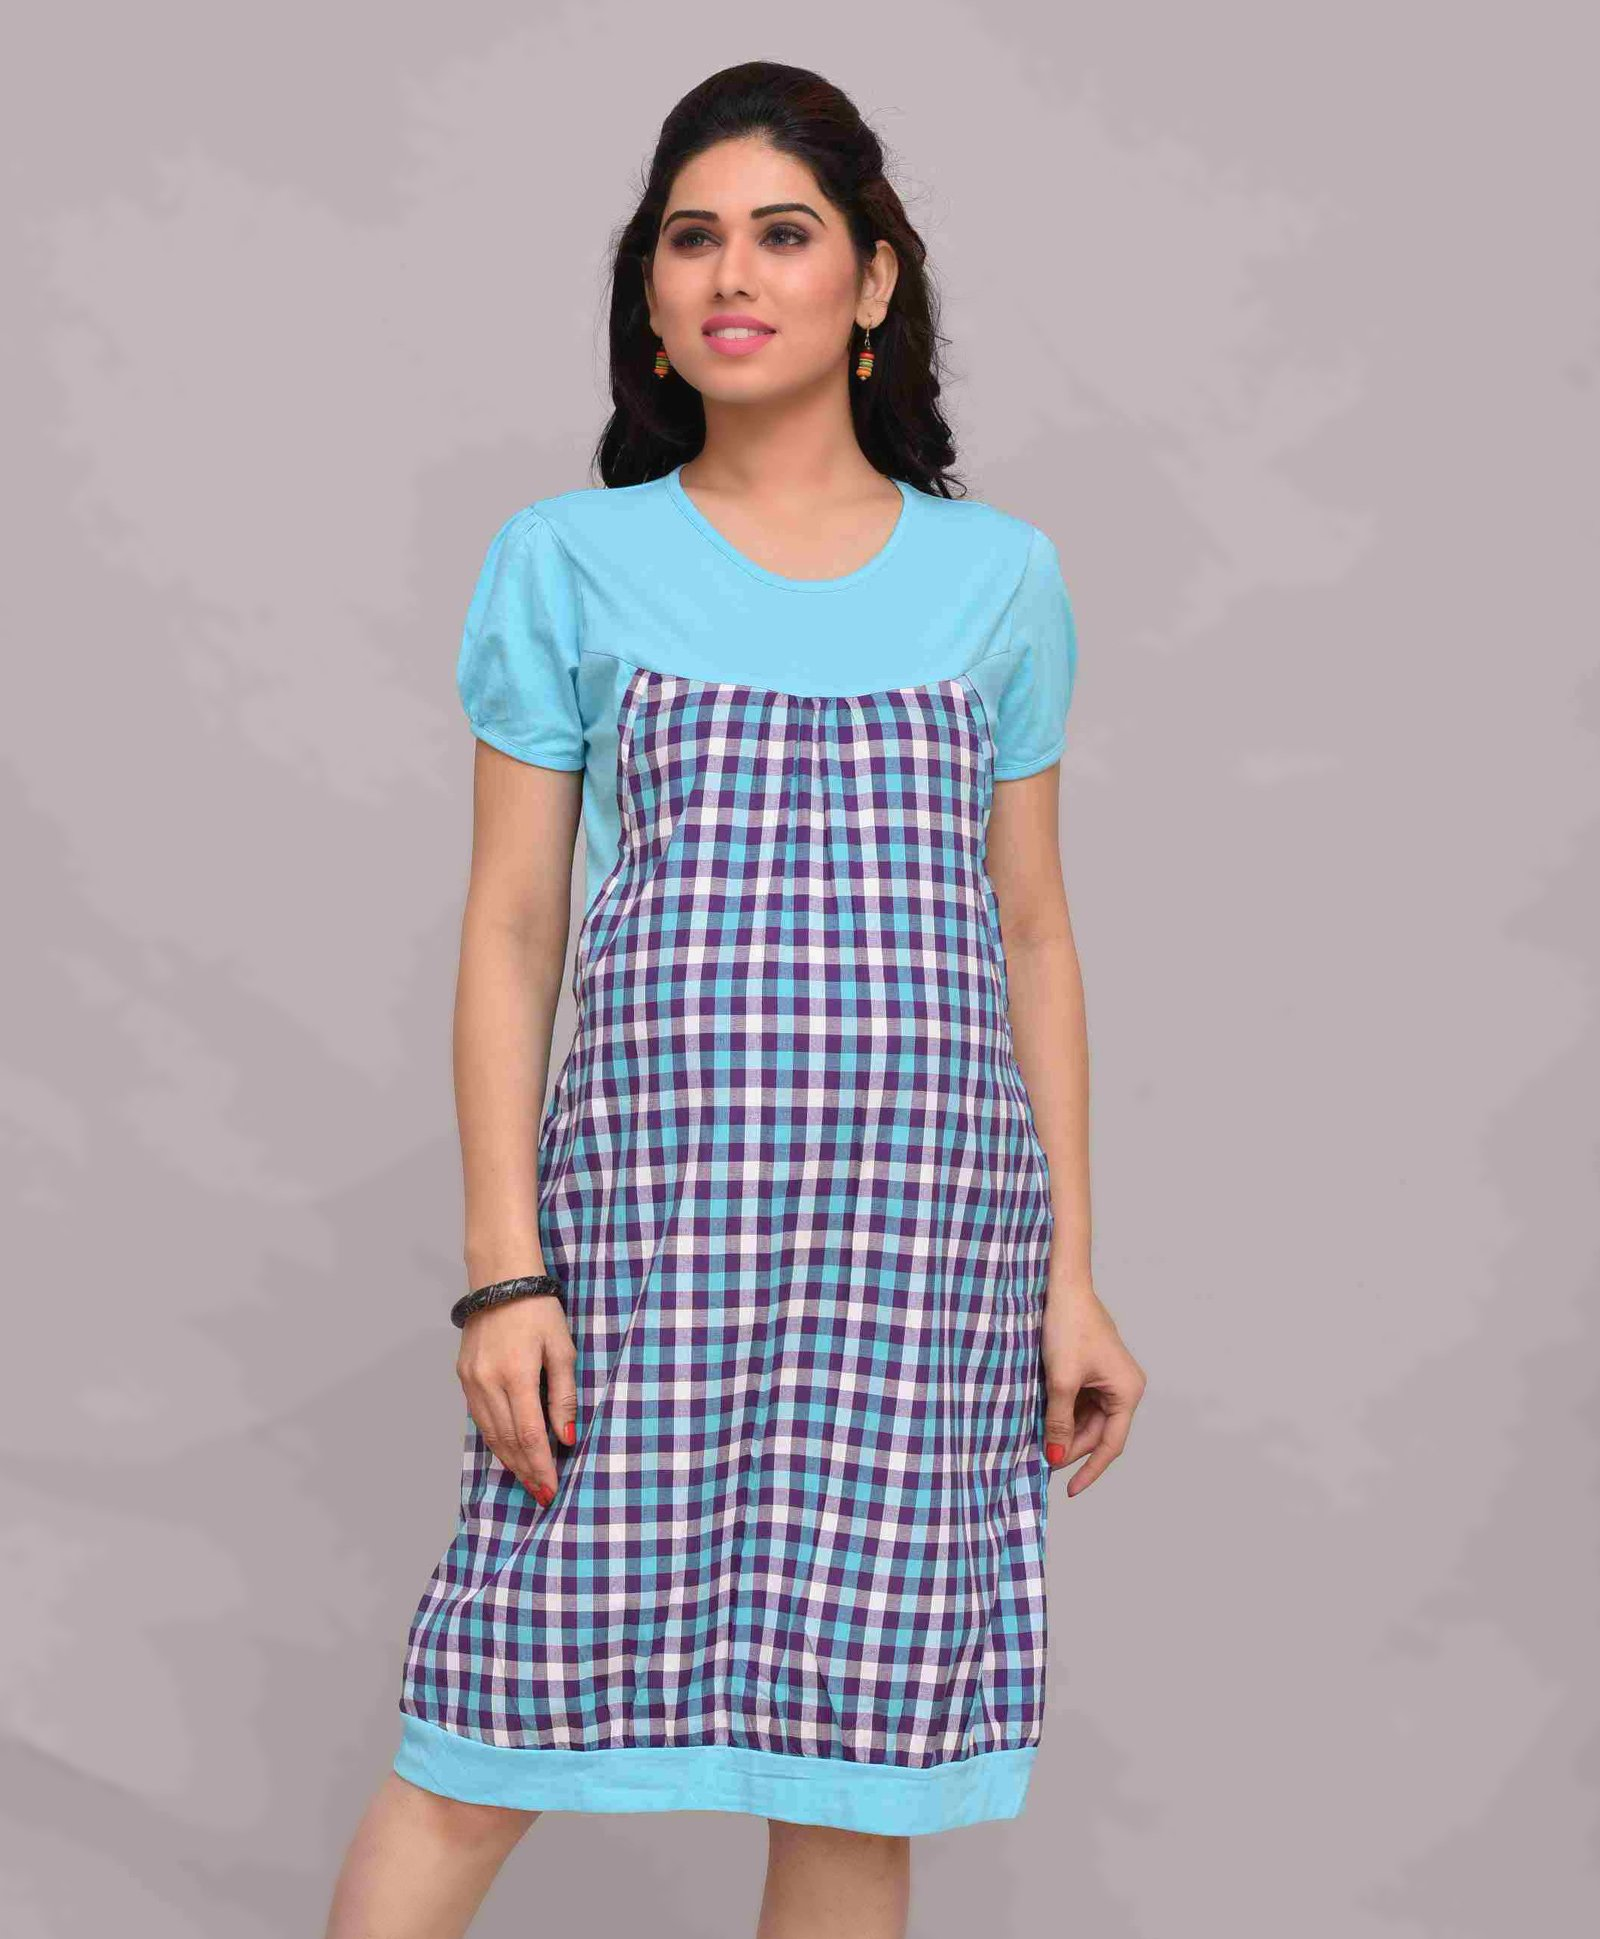 Mama bebe maternity pinafore dress checks pattern blue online in roll over image to zoom ombrellifo Choice Image